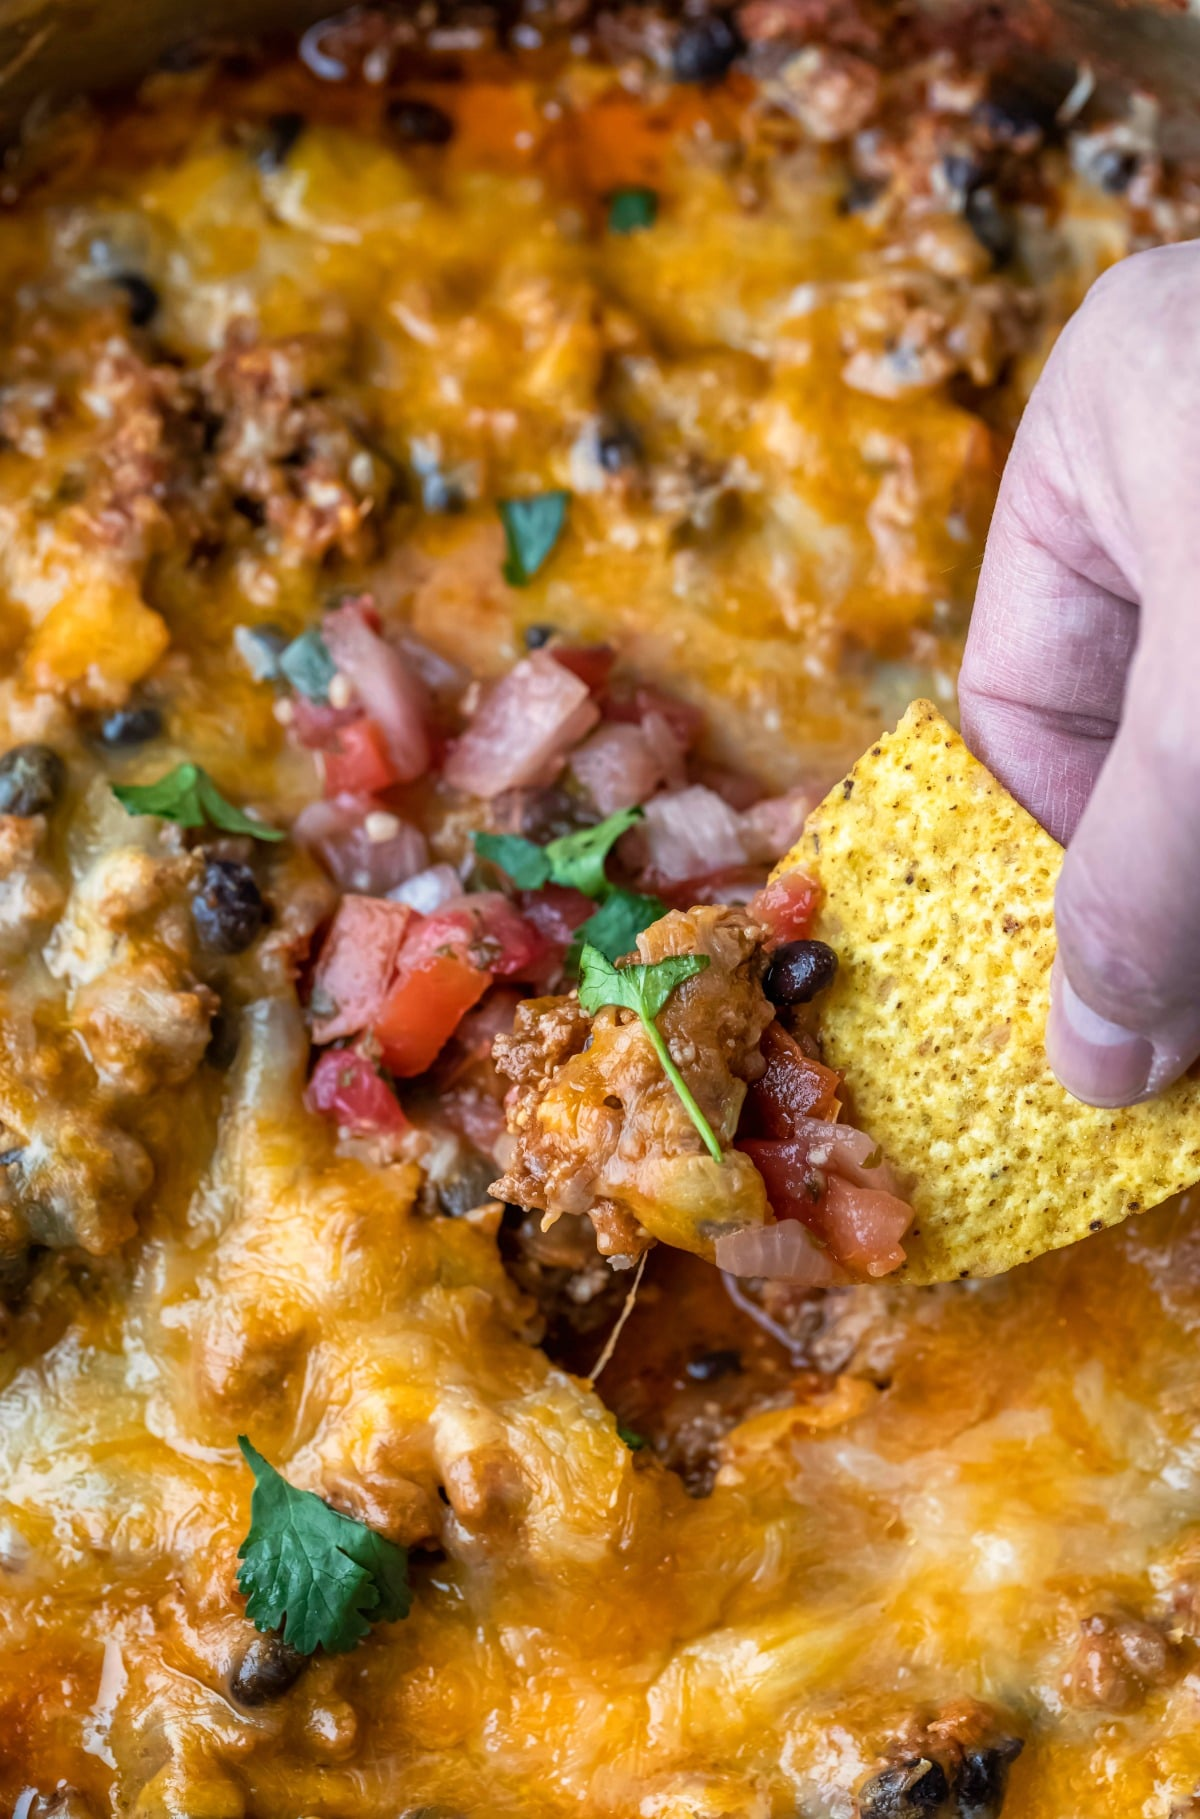 Tortilla chip scooping up taco casserole